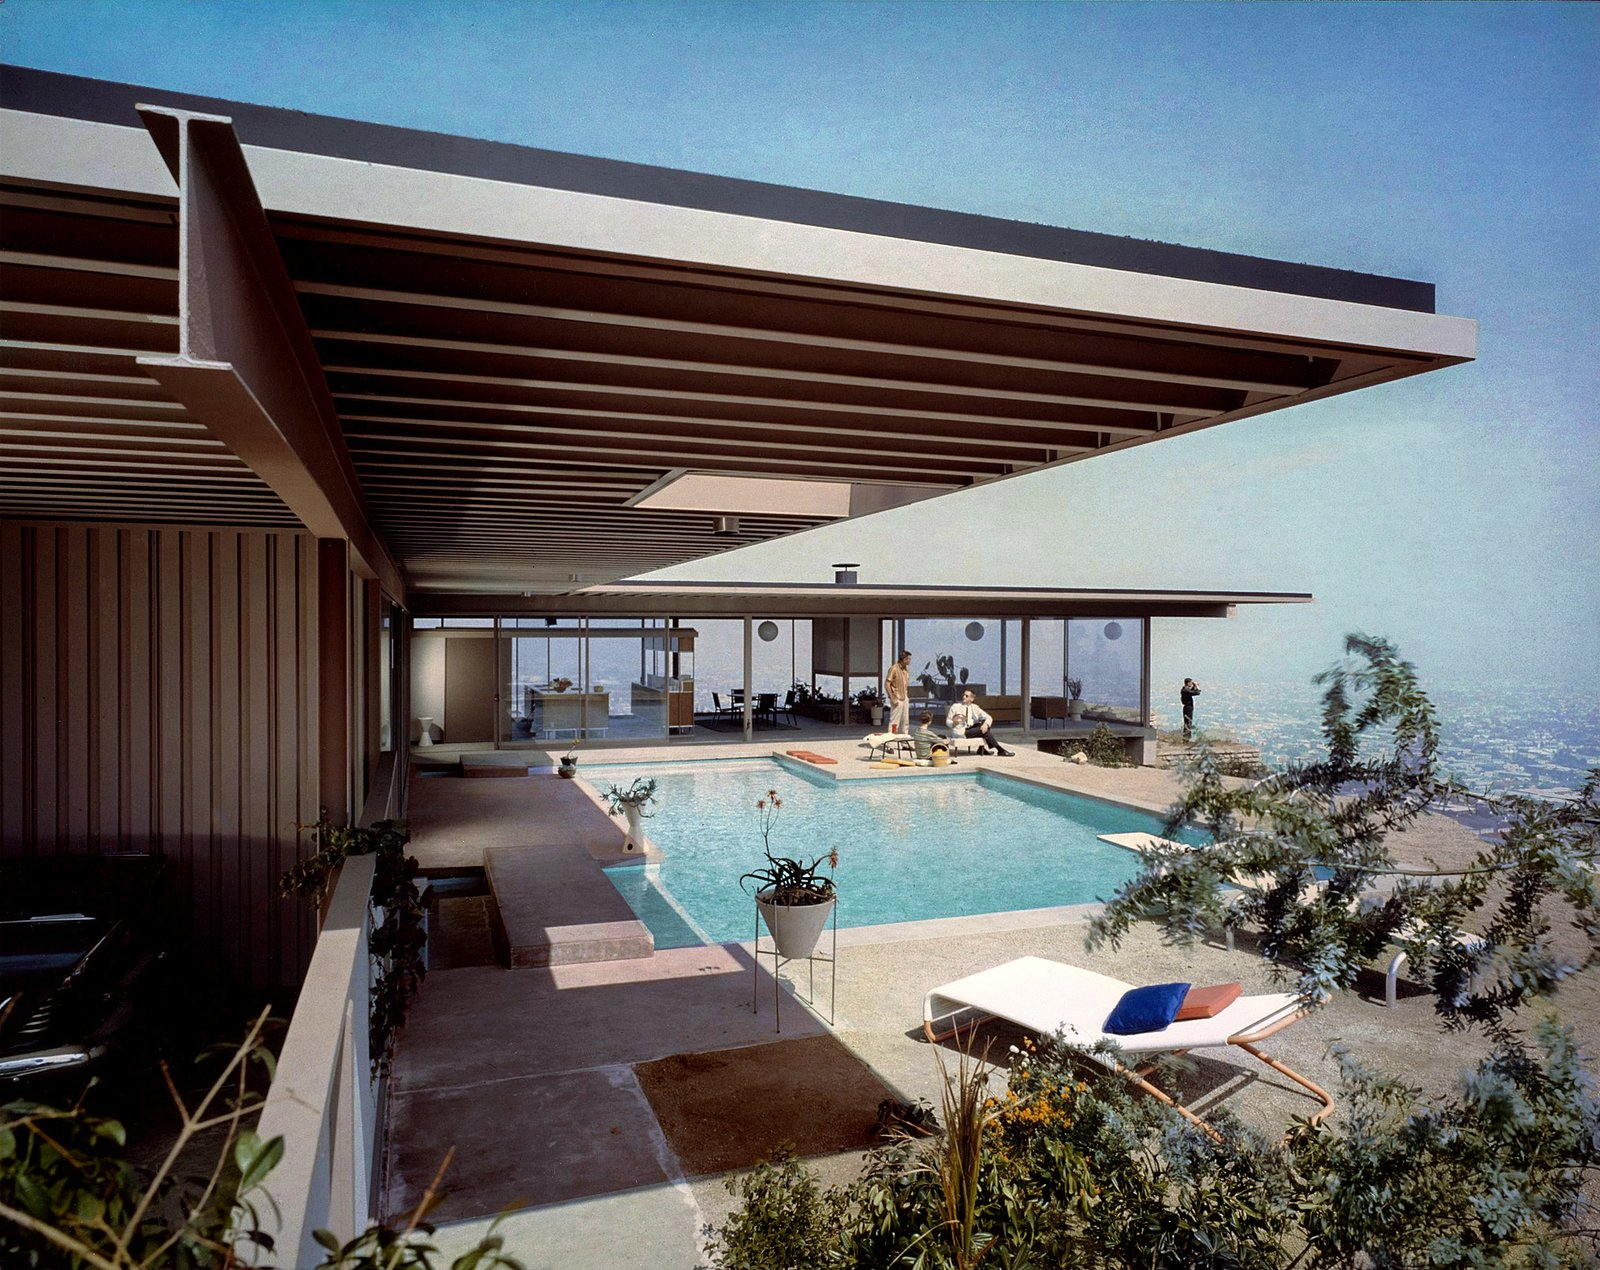 From the 1940s through the late 1960s, Arts & Architecture was  the unofficial headquarters of California's nascent modernist movement. It spearheaded the Case Study House Program, which  produced some of America's  greatest residences. VKG furniture was used for many of the houses, and appears in photos shot by Julius Shulman, as seen above. Tagged: Outdoor, Concrete Pools, Tubs, Shower, Back Yard, Large Pools, Tubs, Shower, and Swimming Pools, Tubs, Shower.  Photo 2 of 4 in Spotlight on the Midcentury Design Duo Who Invented the Term Indoor/Outdoor Living